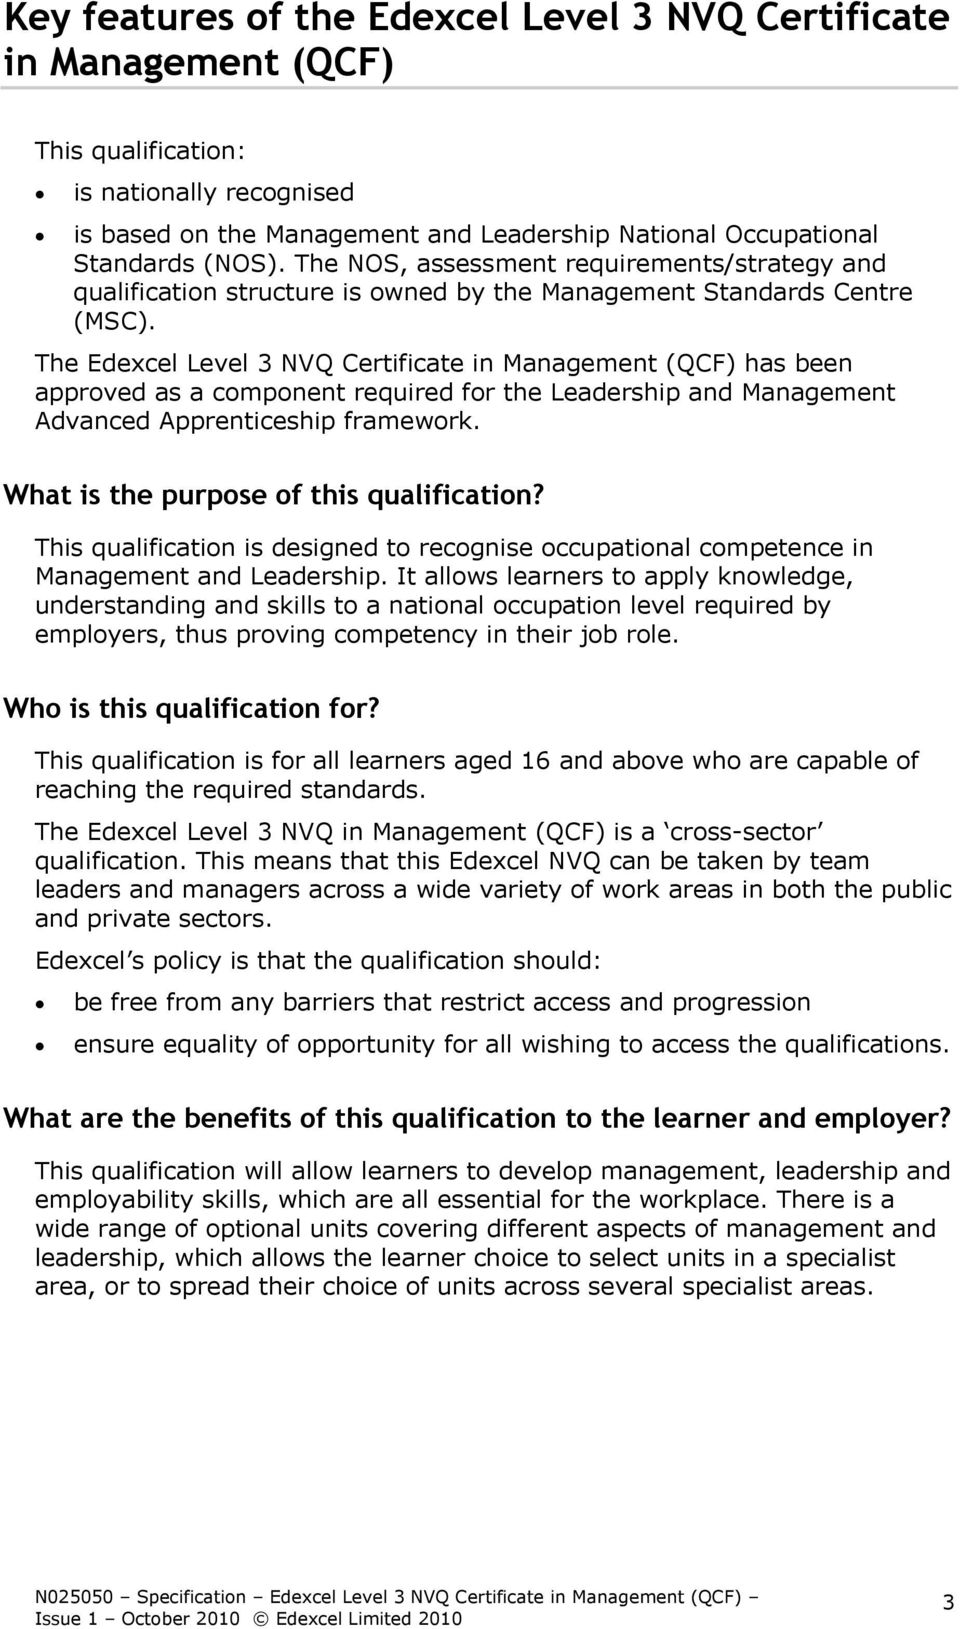 The Edexcel Level 3 NVQ Certificate in Management (QCF) has been approved as a component required for the Leadership and Management Advanced Apprenticeship framework.